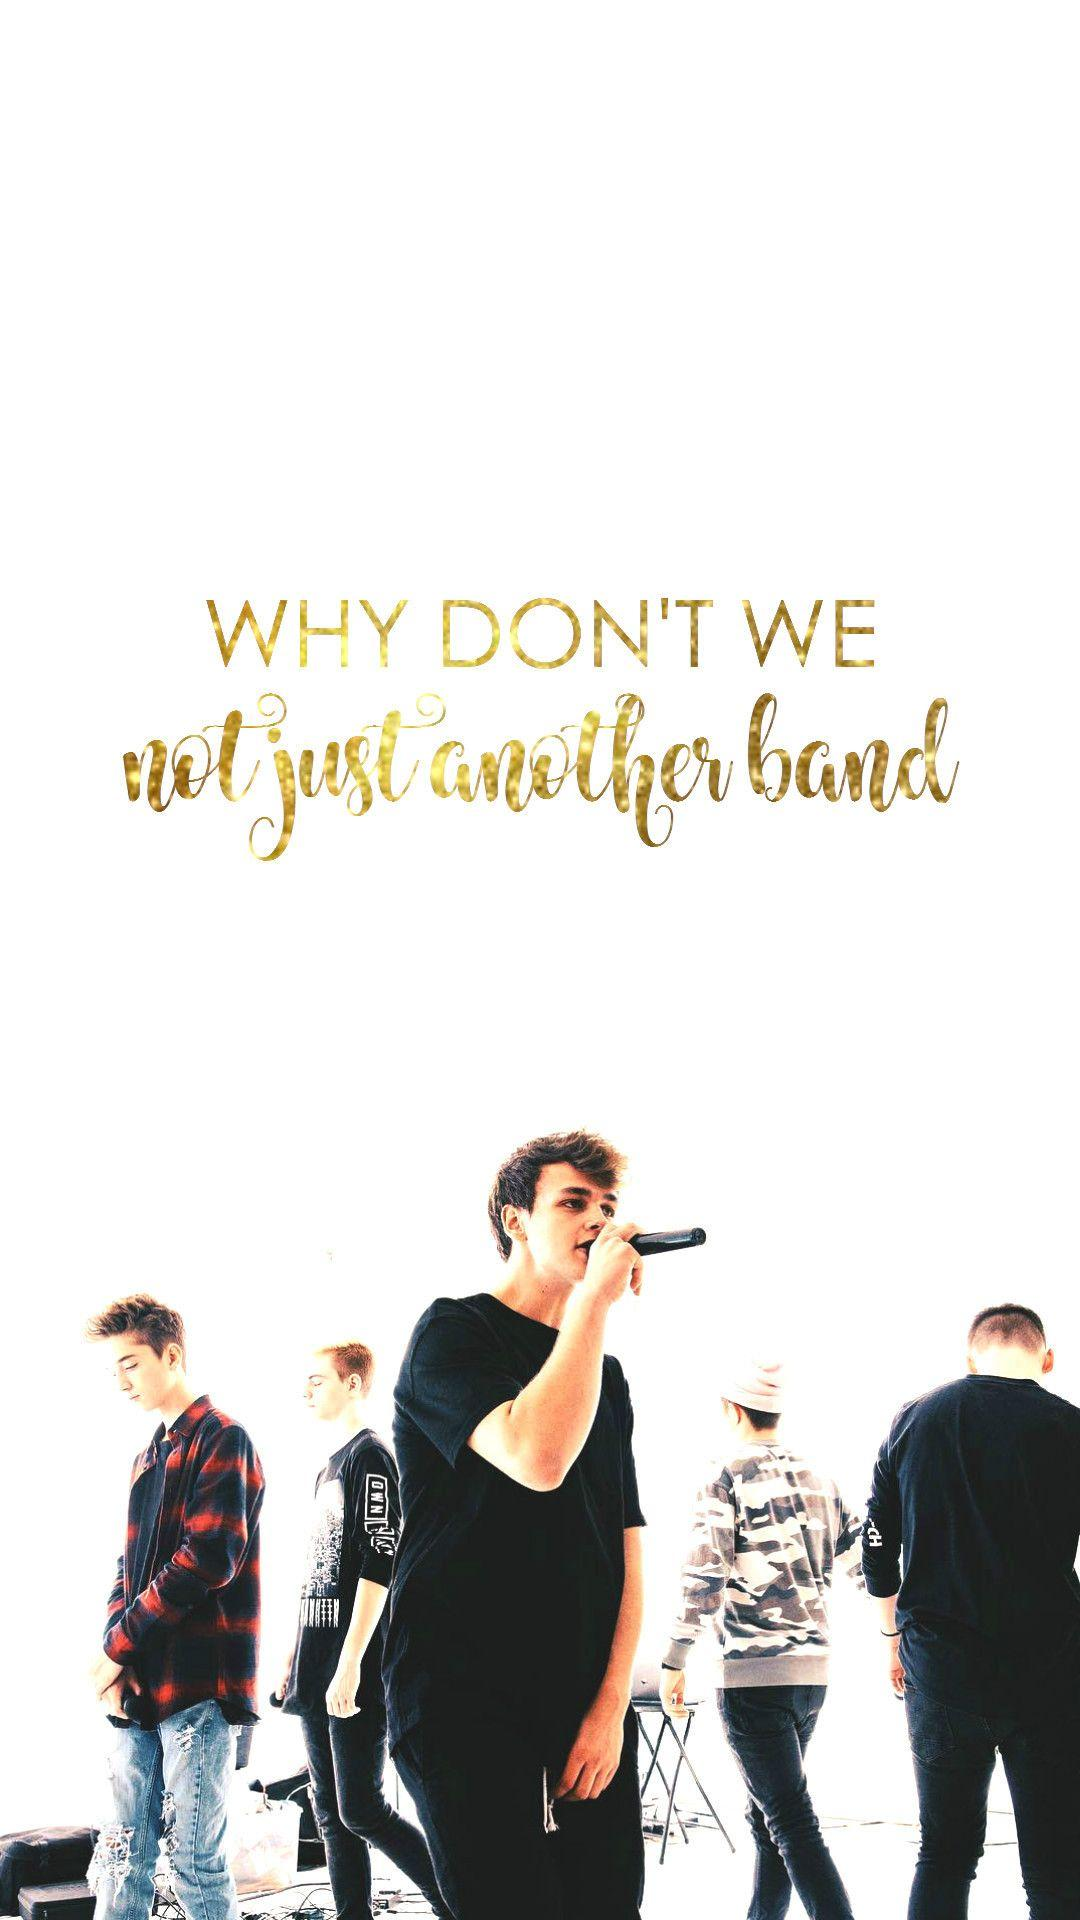 Why Don't We Wallpapers - Wallpaper Cave